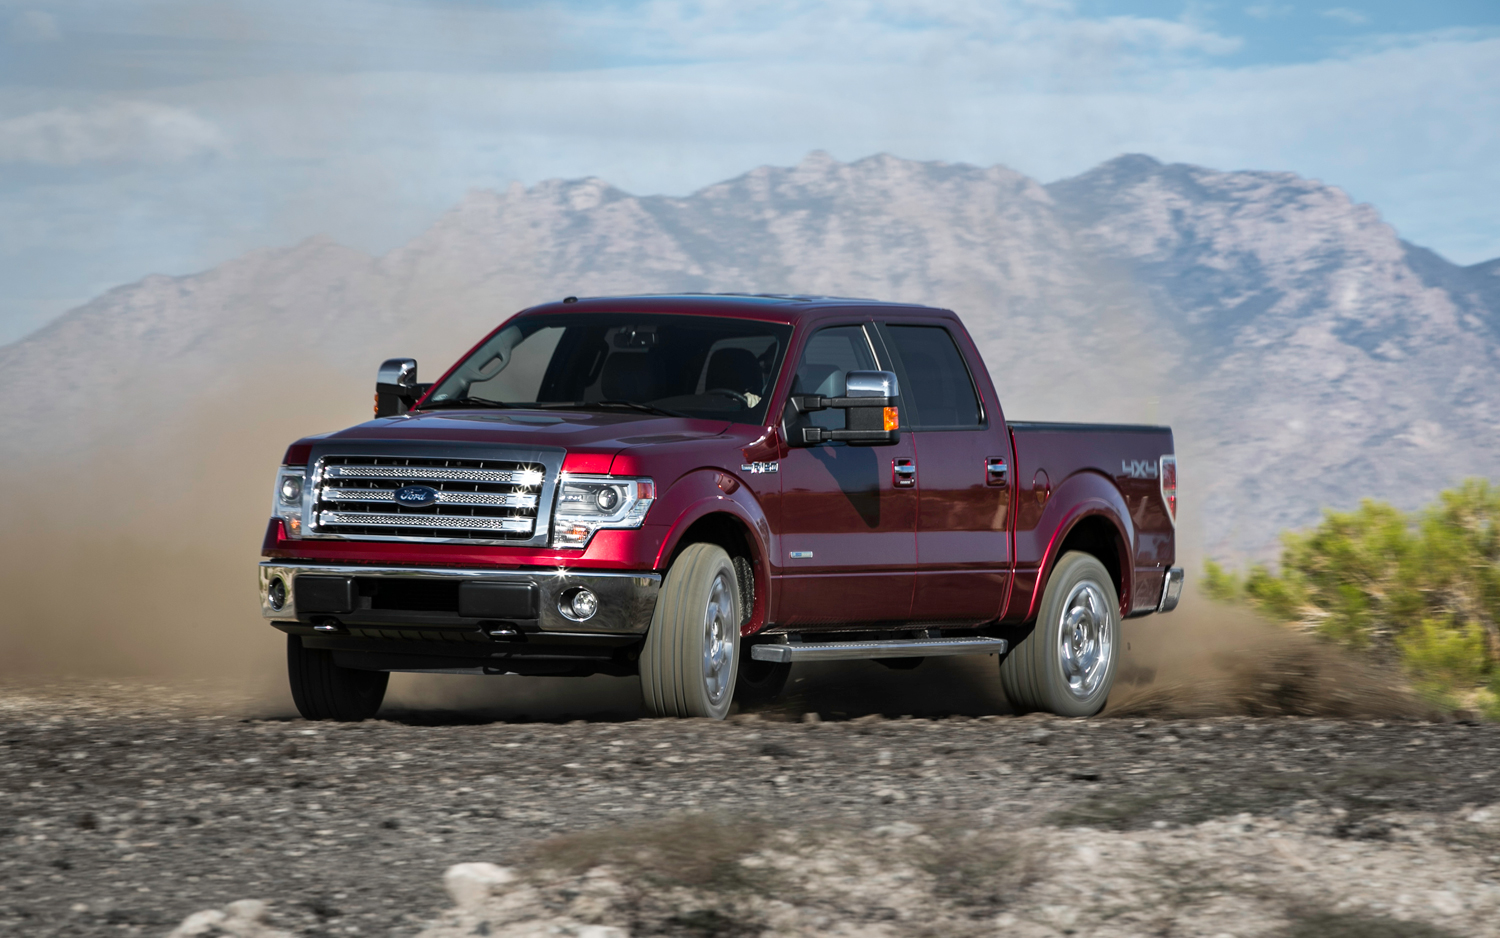 Top 10 Best-Selling Vehicles in October 2013